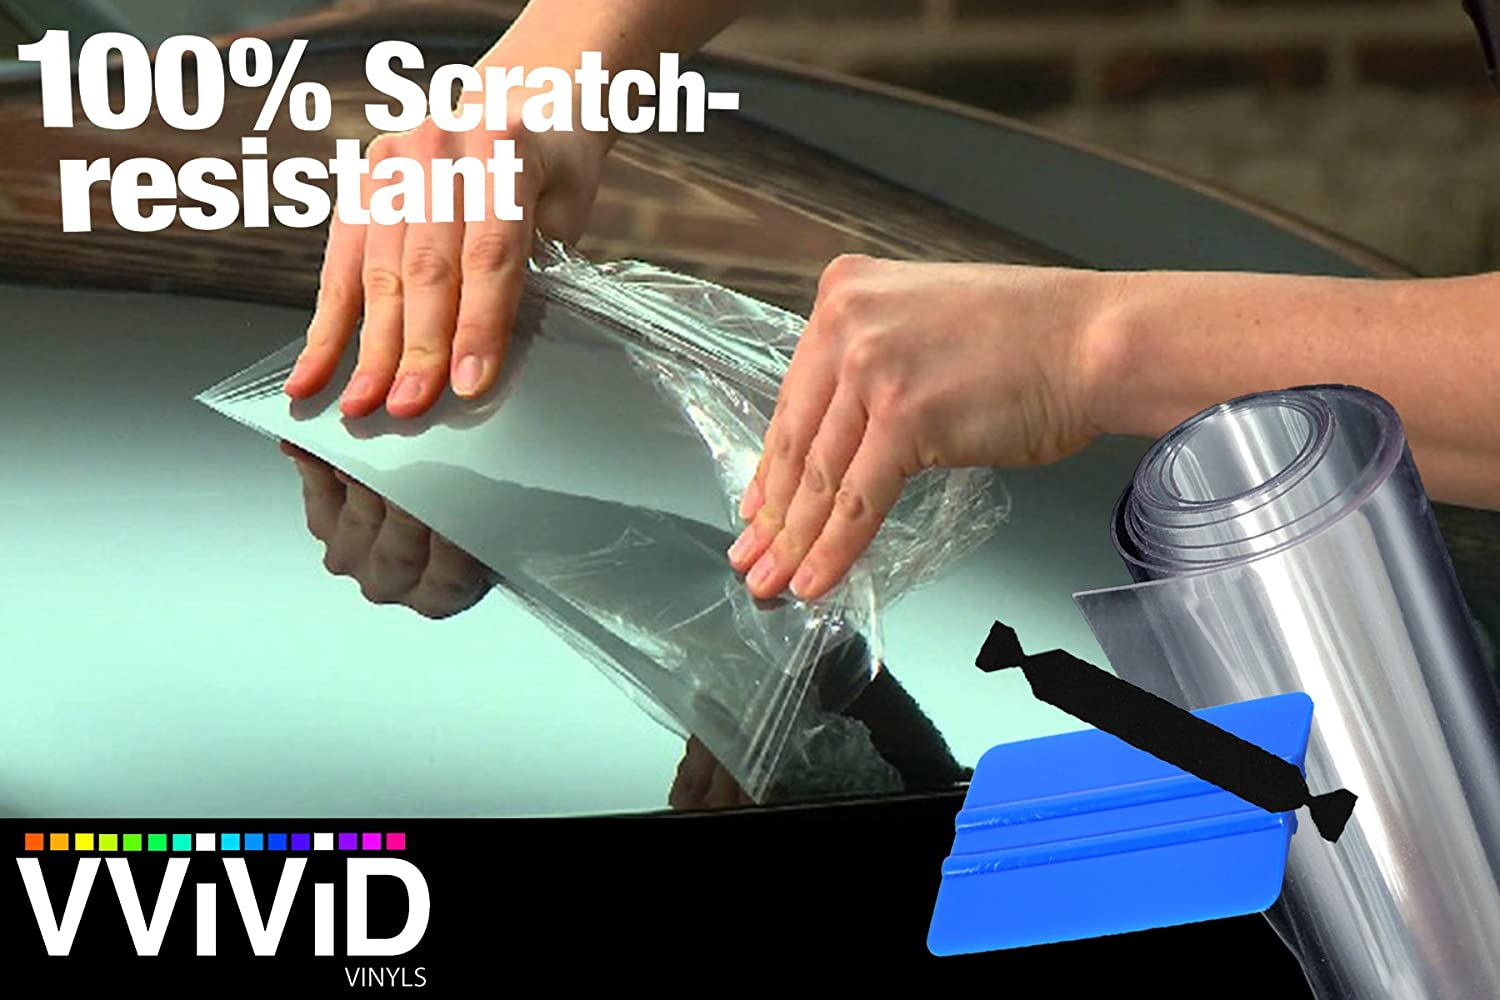 VViViD Clear Paint Protection Bulk Vinyl Wrap Film Including 3M Squeegee and Black Felt Applicator (54' x 60')